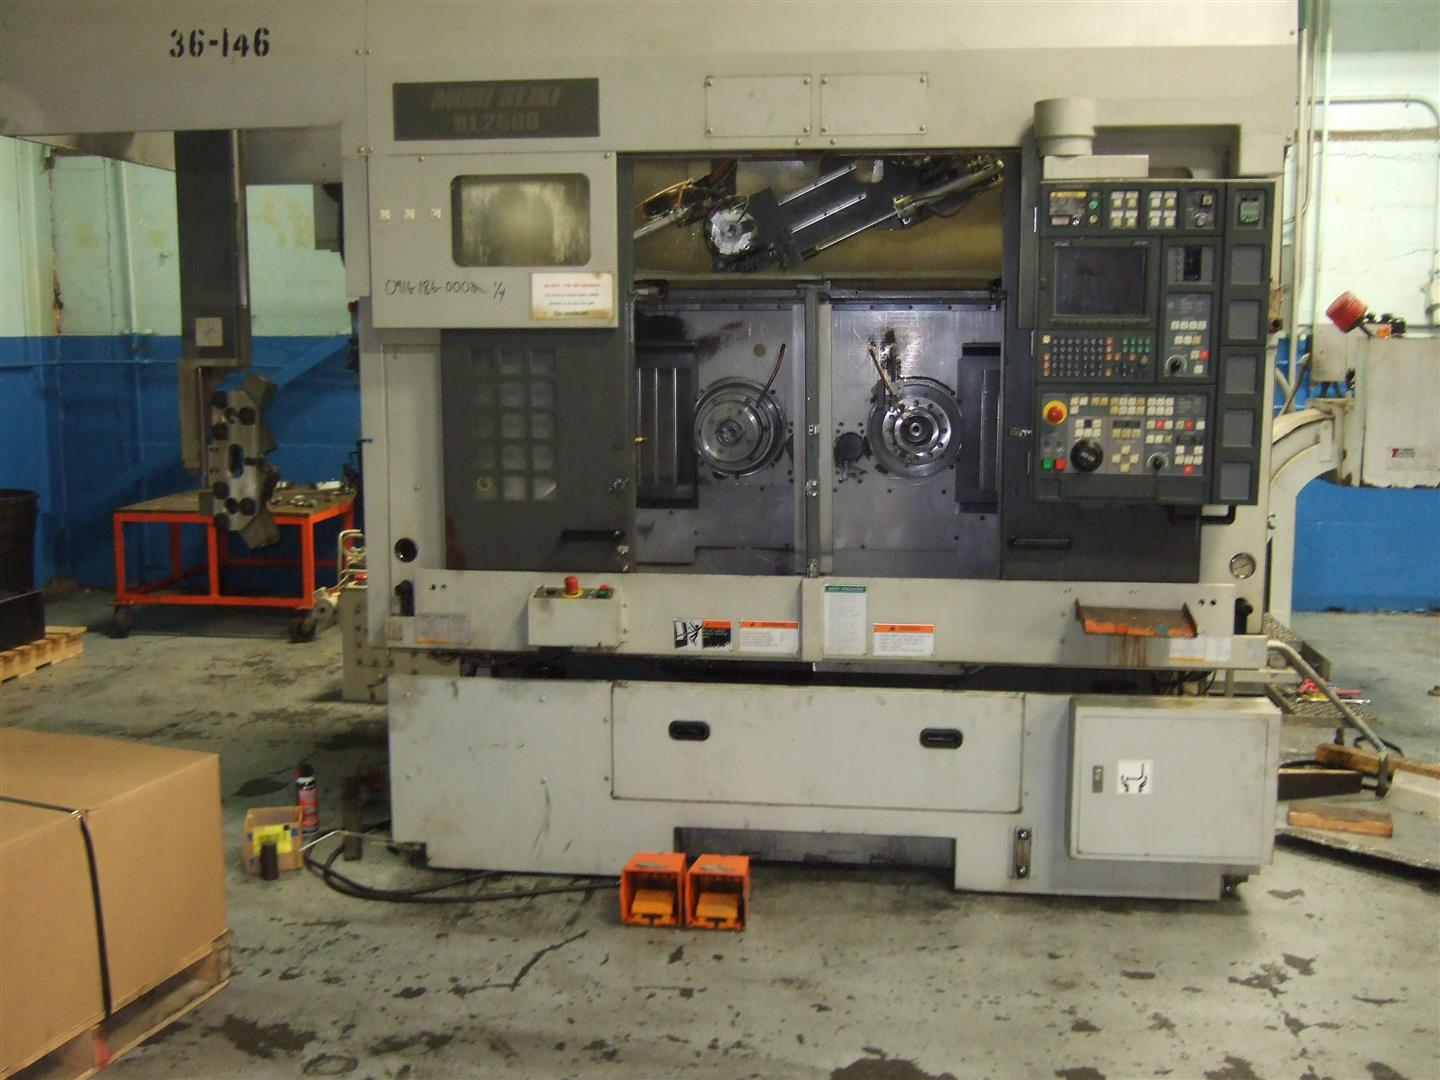 Machine 6703, Mori-Seiki RL2500 Dual Spindle 4-Axis Chuckers, 2005, Gantry Loaders, MSX-501 Controls, Chip Conveyors, Expanding Madrels, Two (2) Available